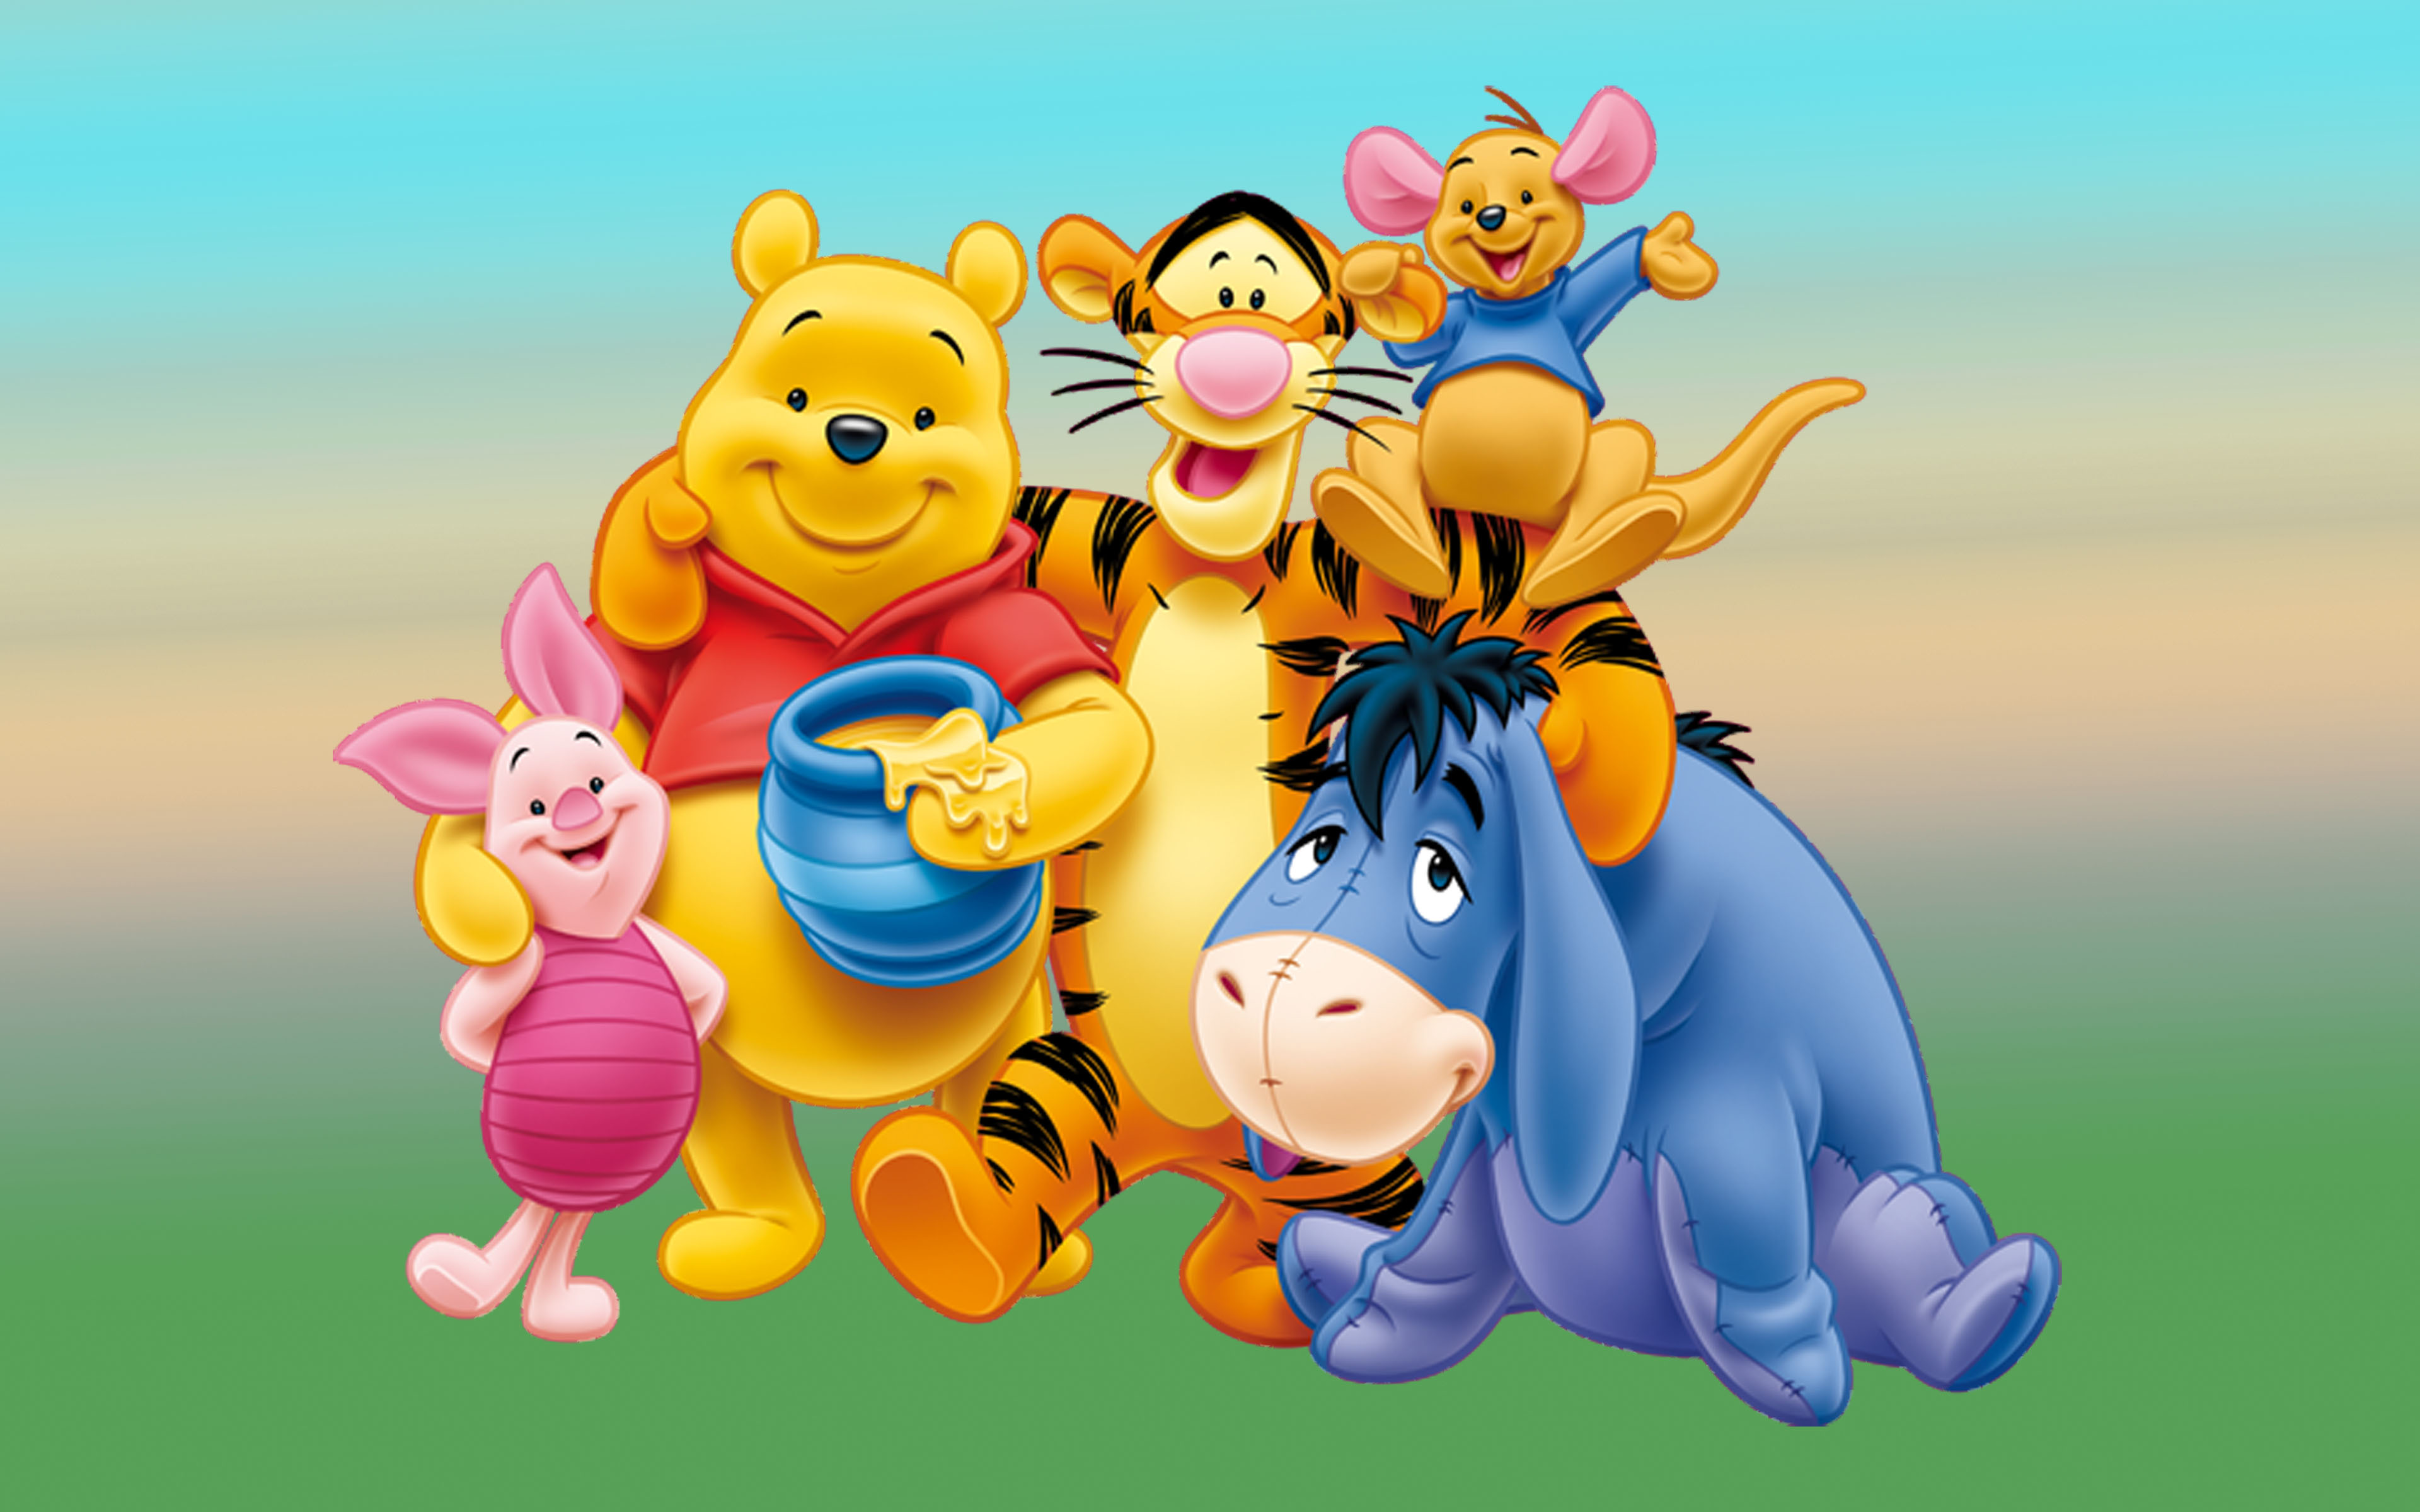 Winnie The Pooh Characters   Image Mag 3840x2400